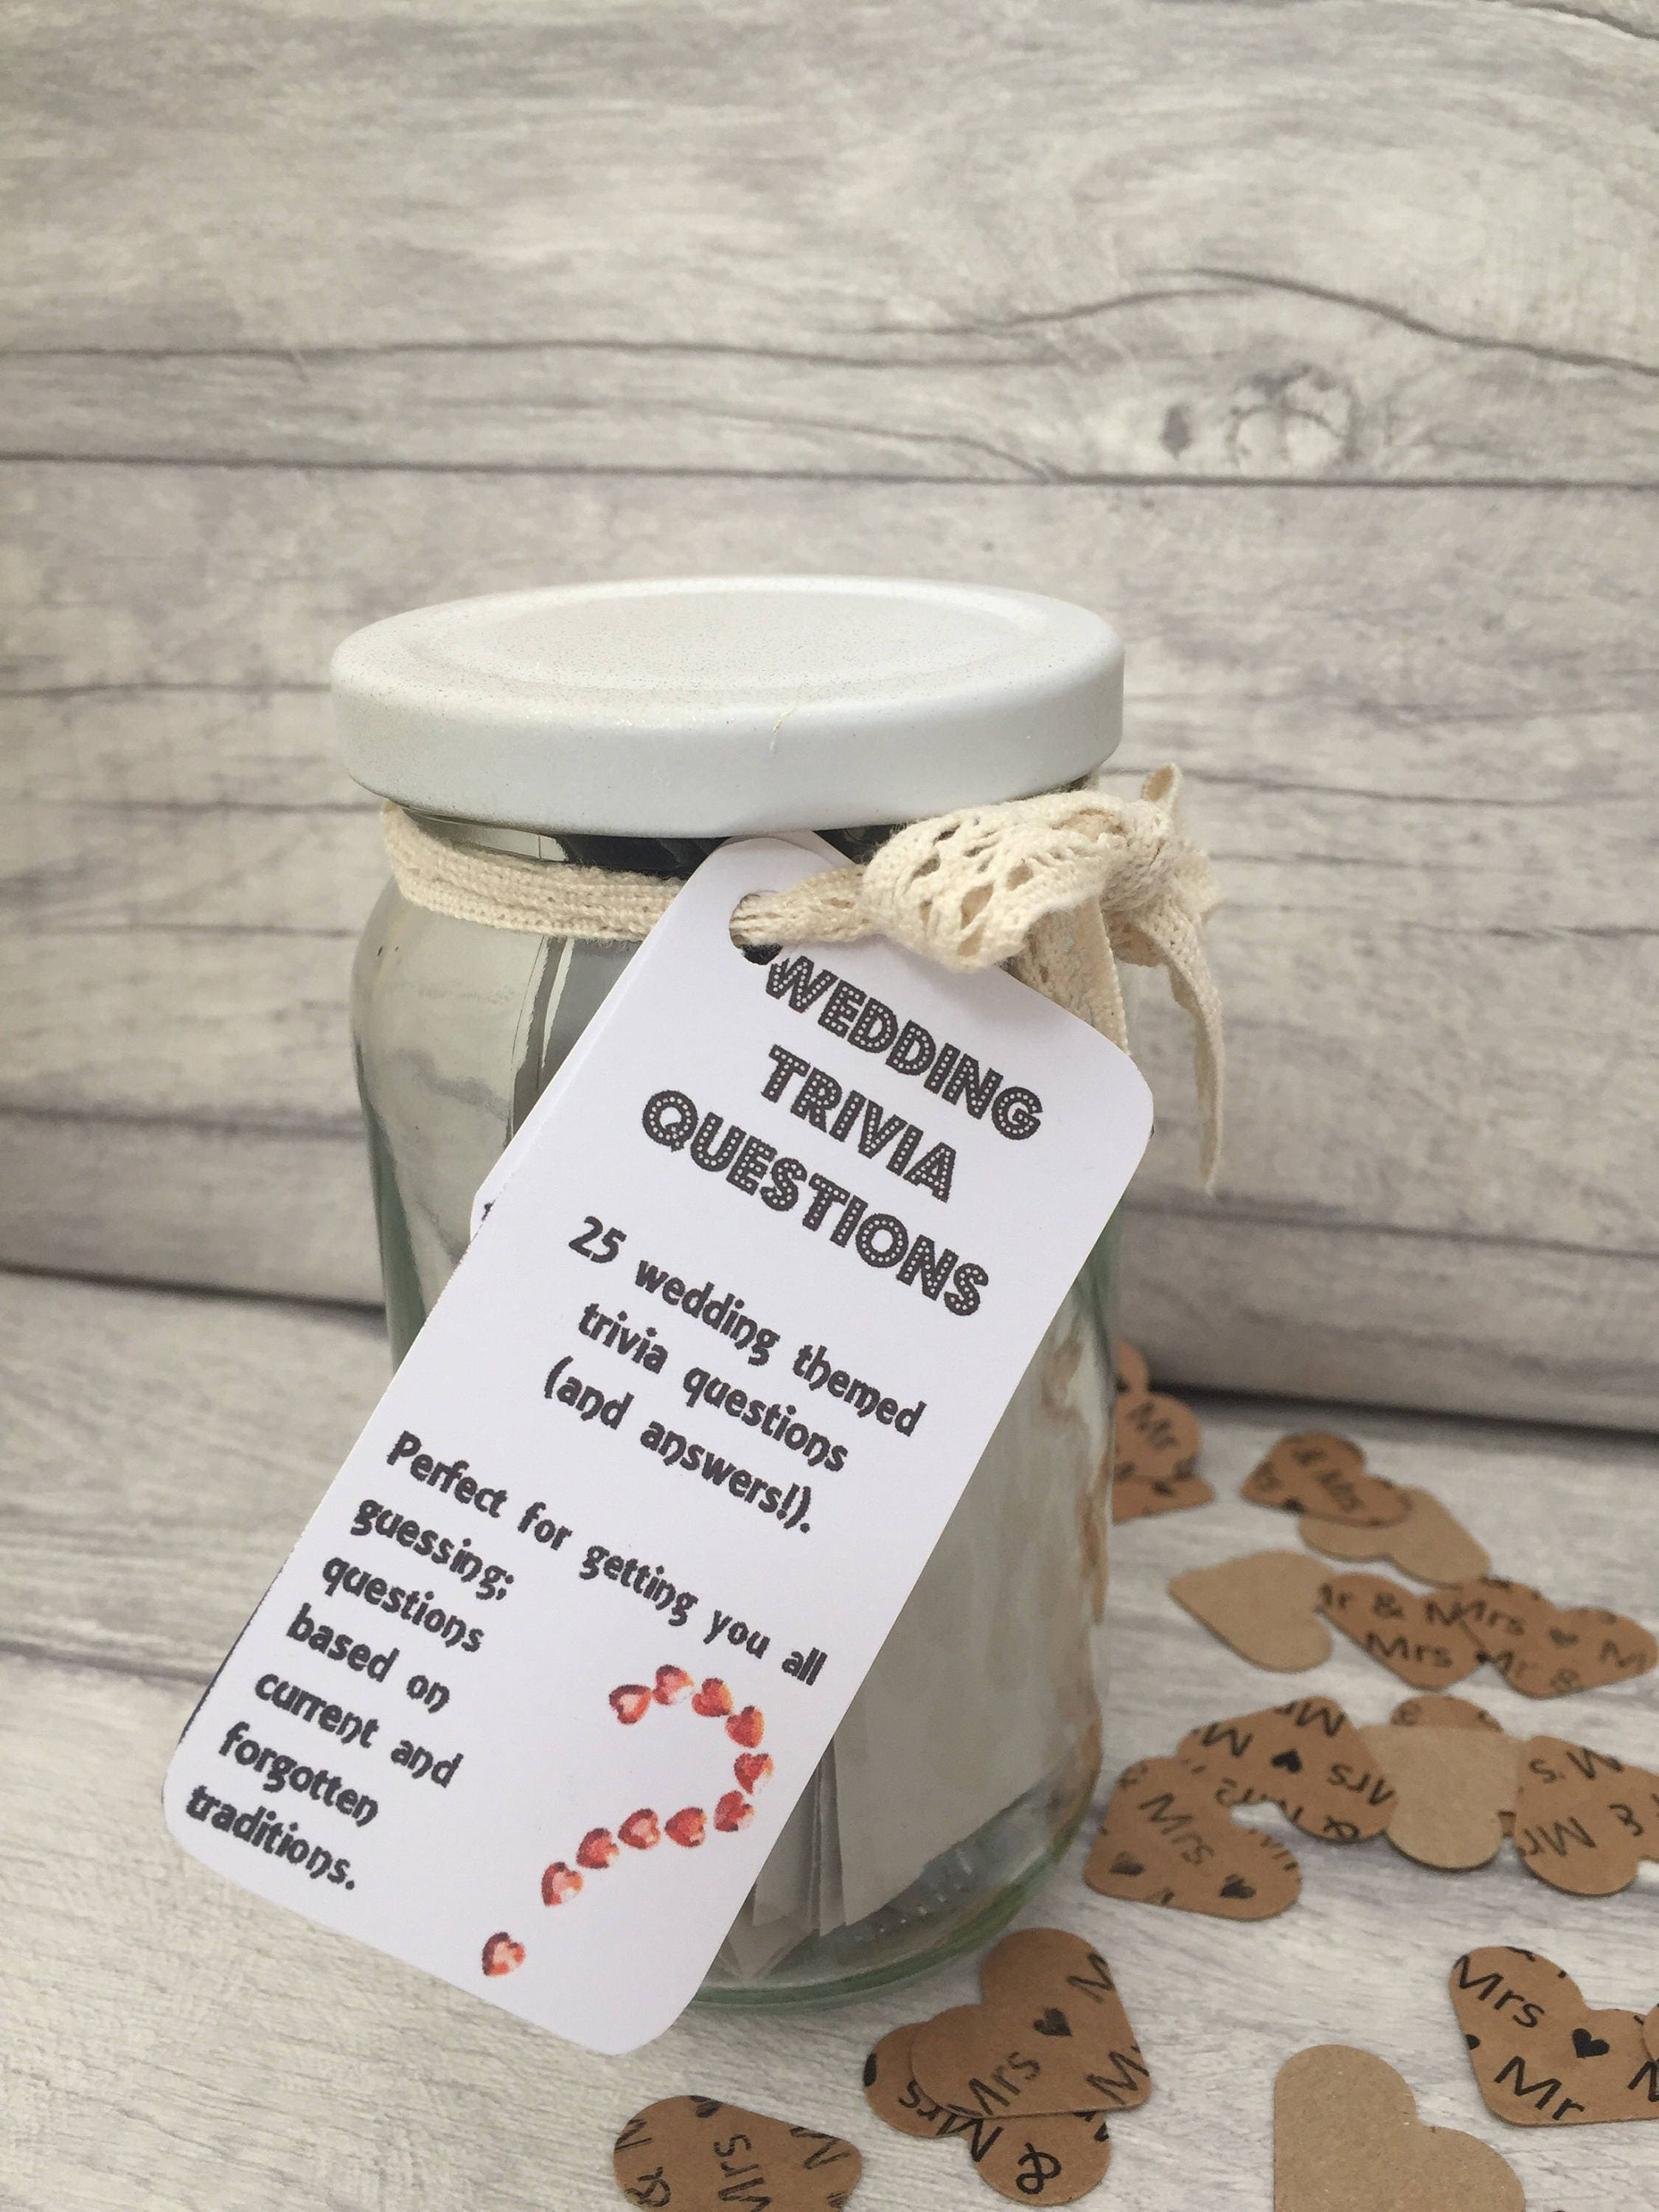 Wedding Trivia Jam Packed Jars Wedding Games Bride and